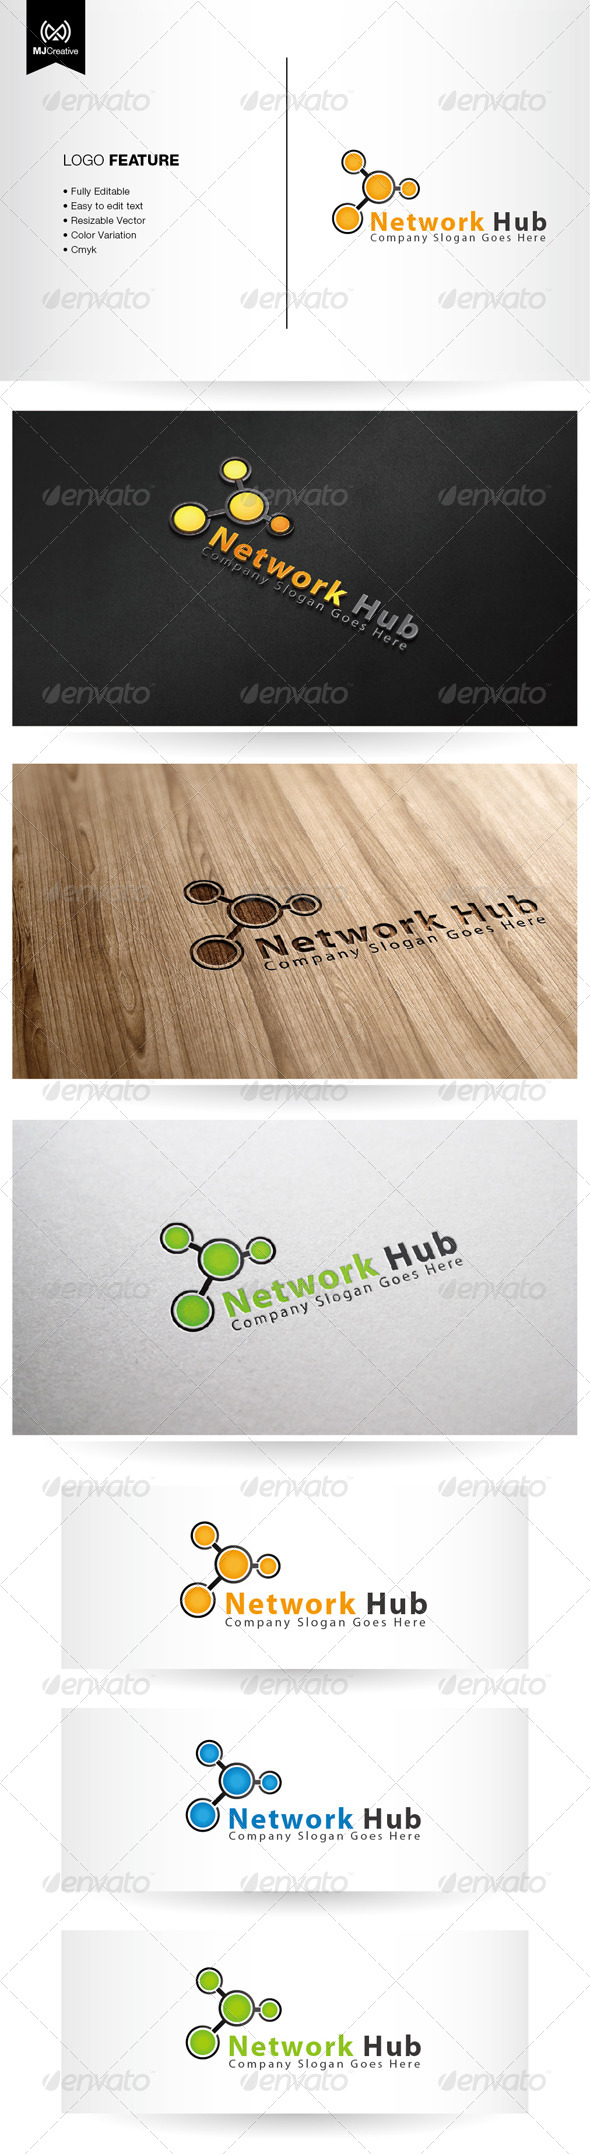 Network Hub Logo - Vector Abstract